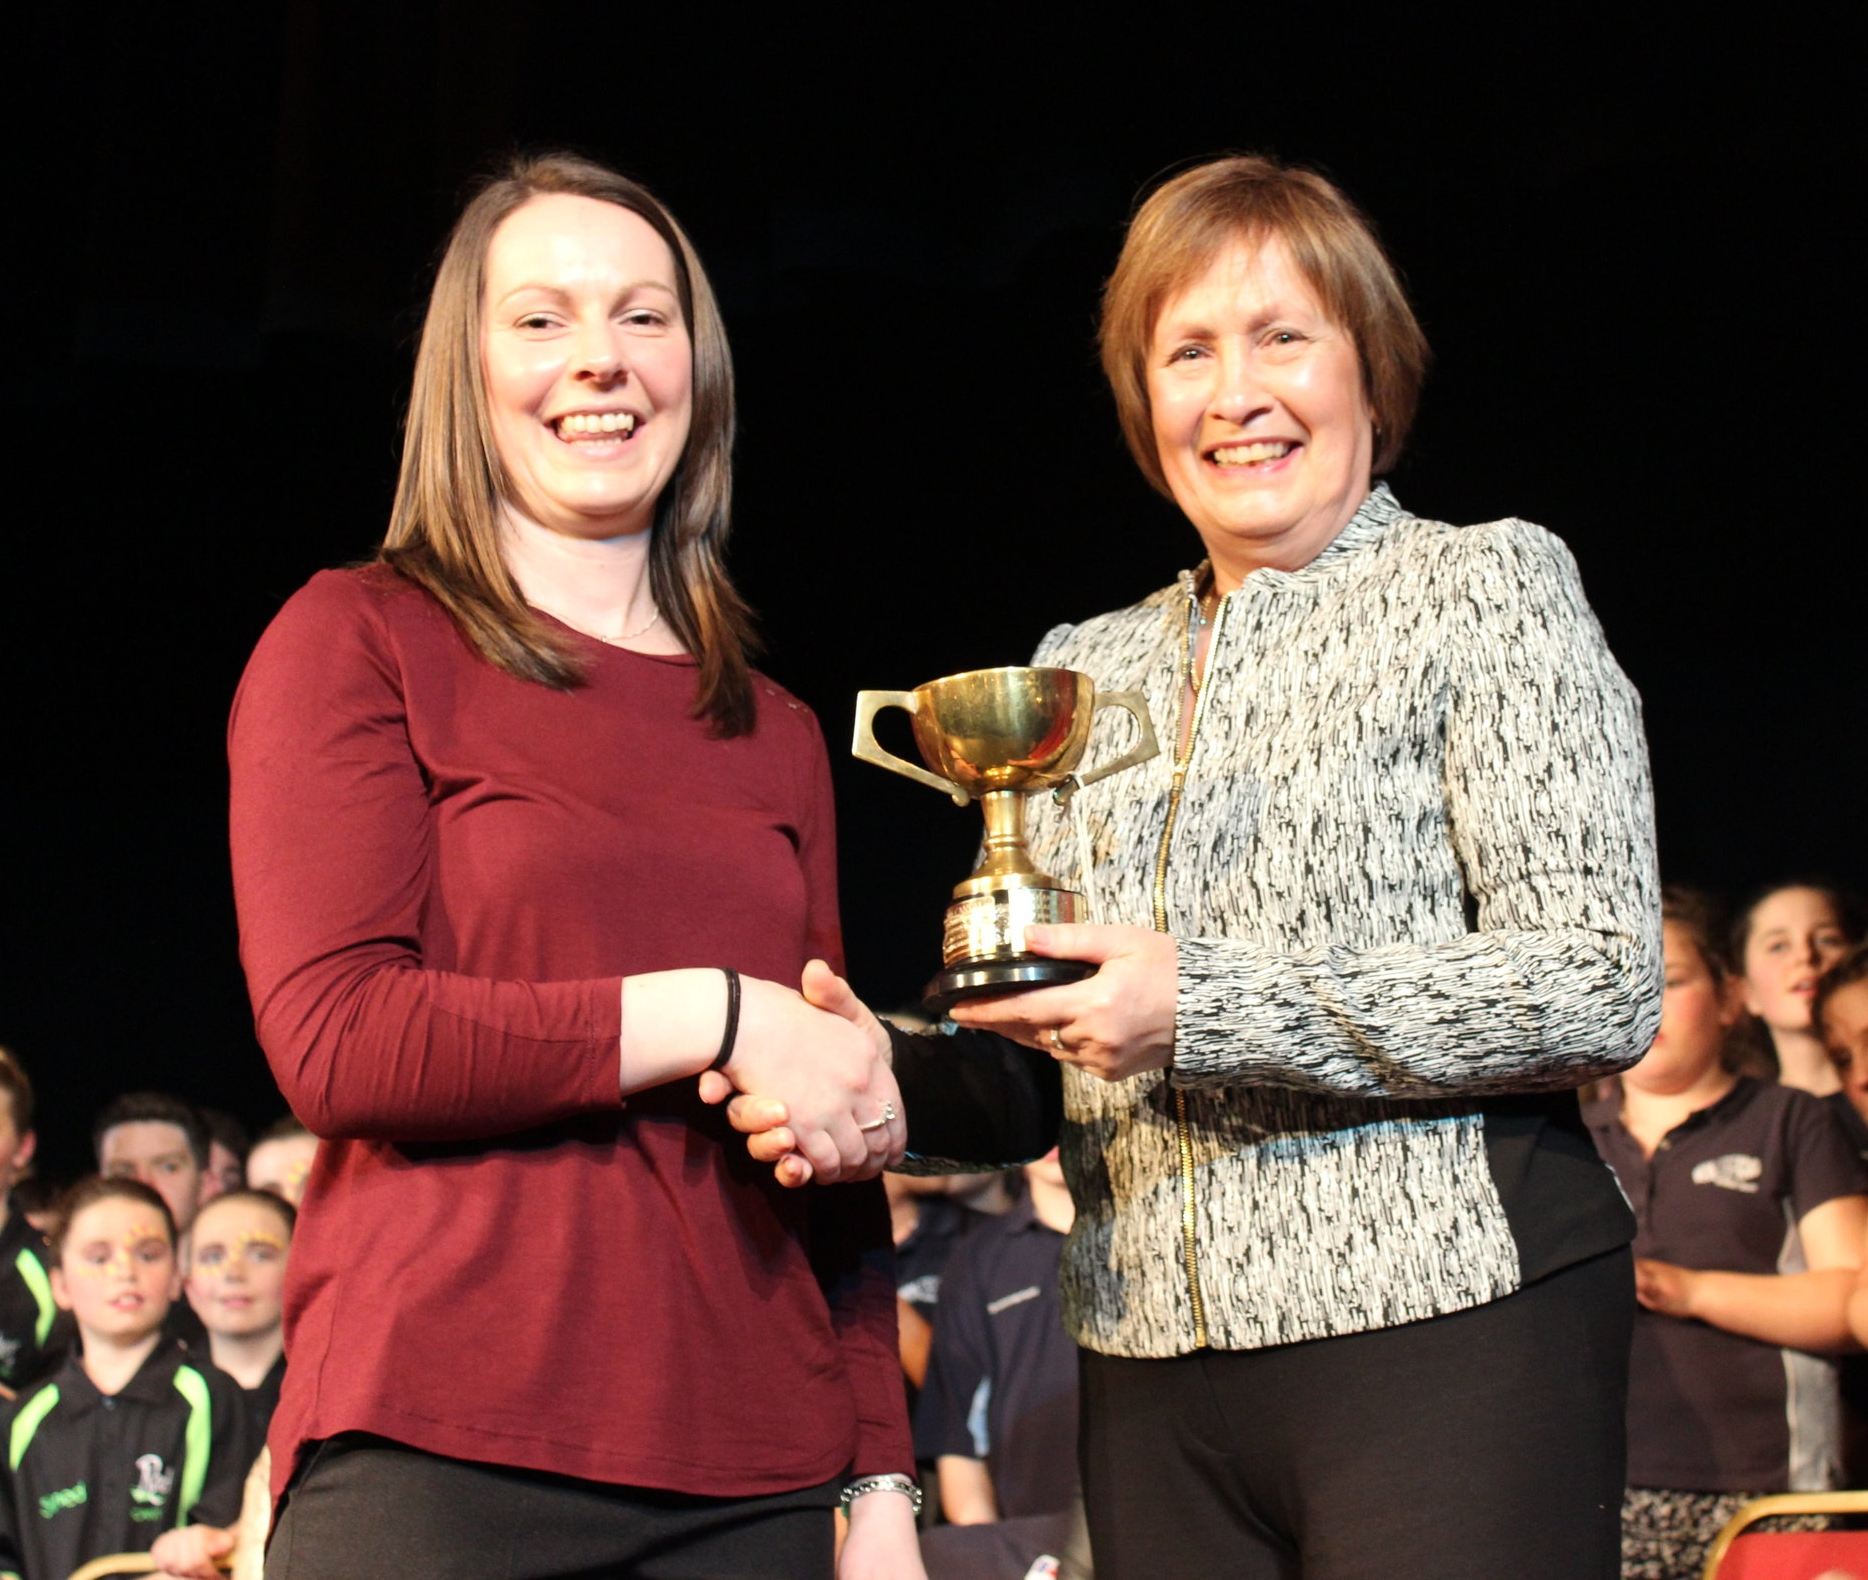 Gwen Samuel - Aberedw YFC - Tom Hooson Cup - Highest Placed Small Club